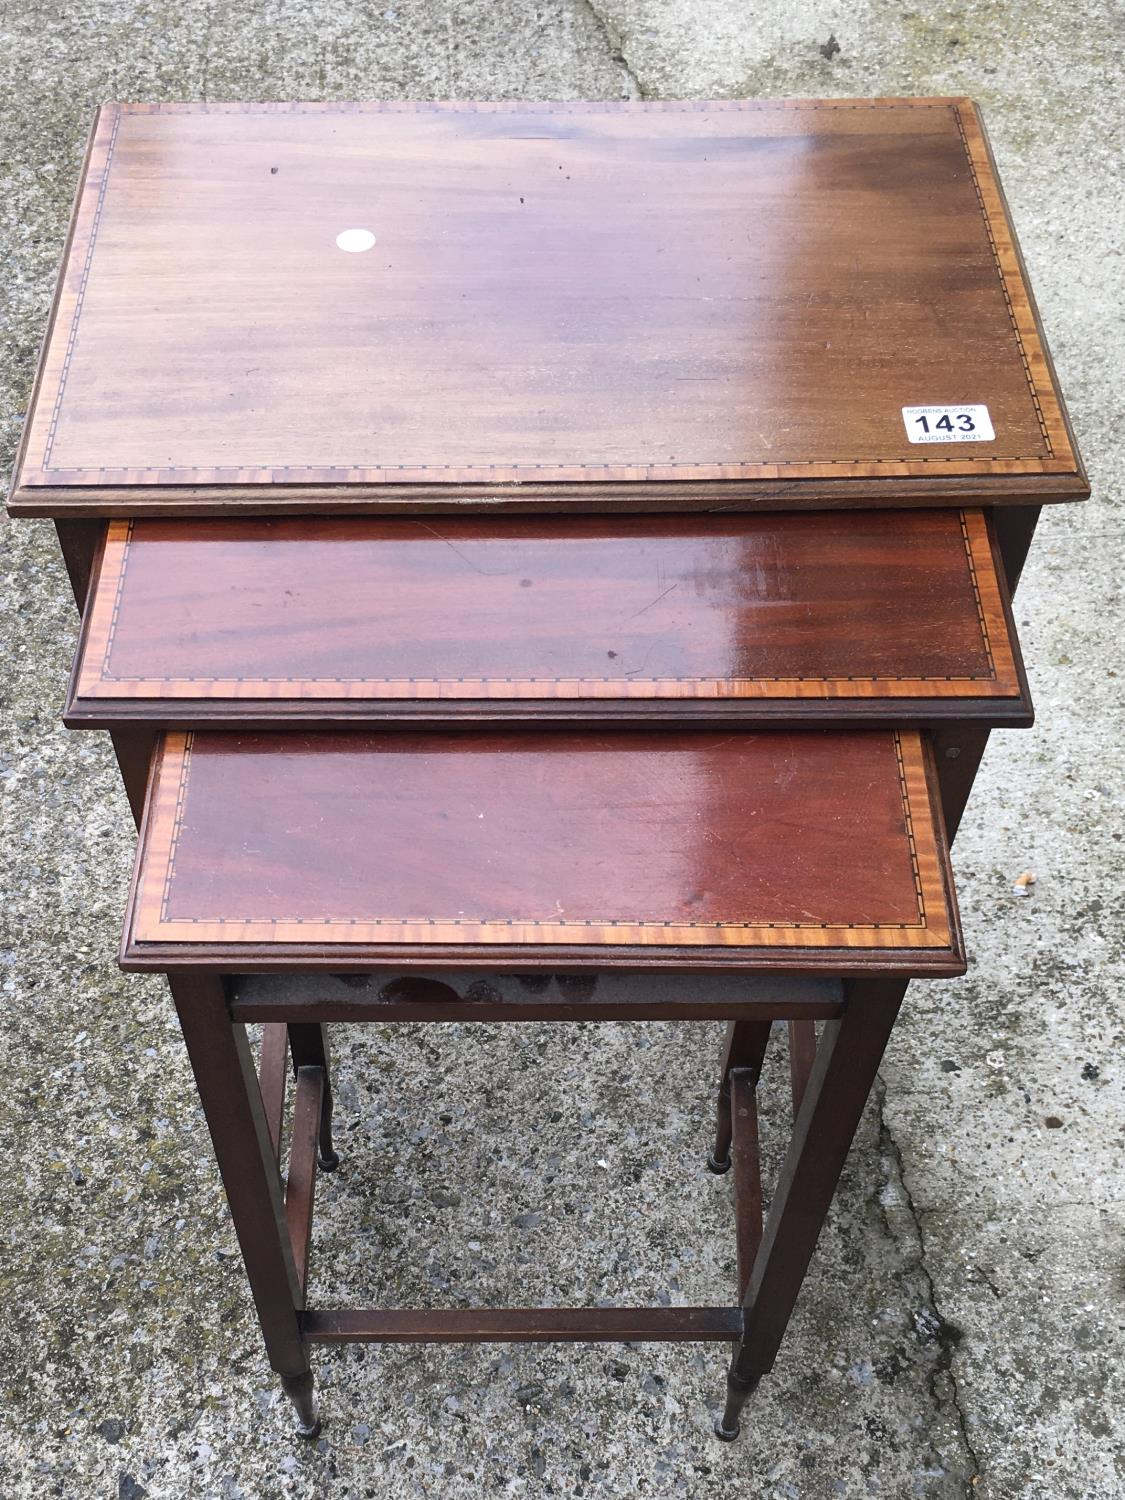 Nest of 3 x Edwardian period tables, with satinwood banding